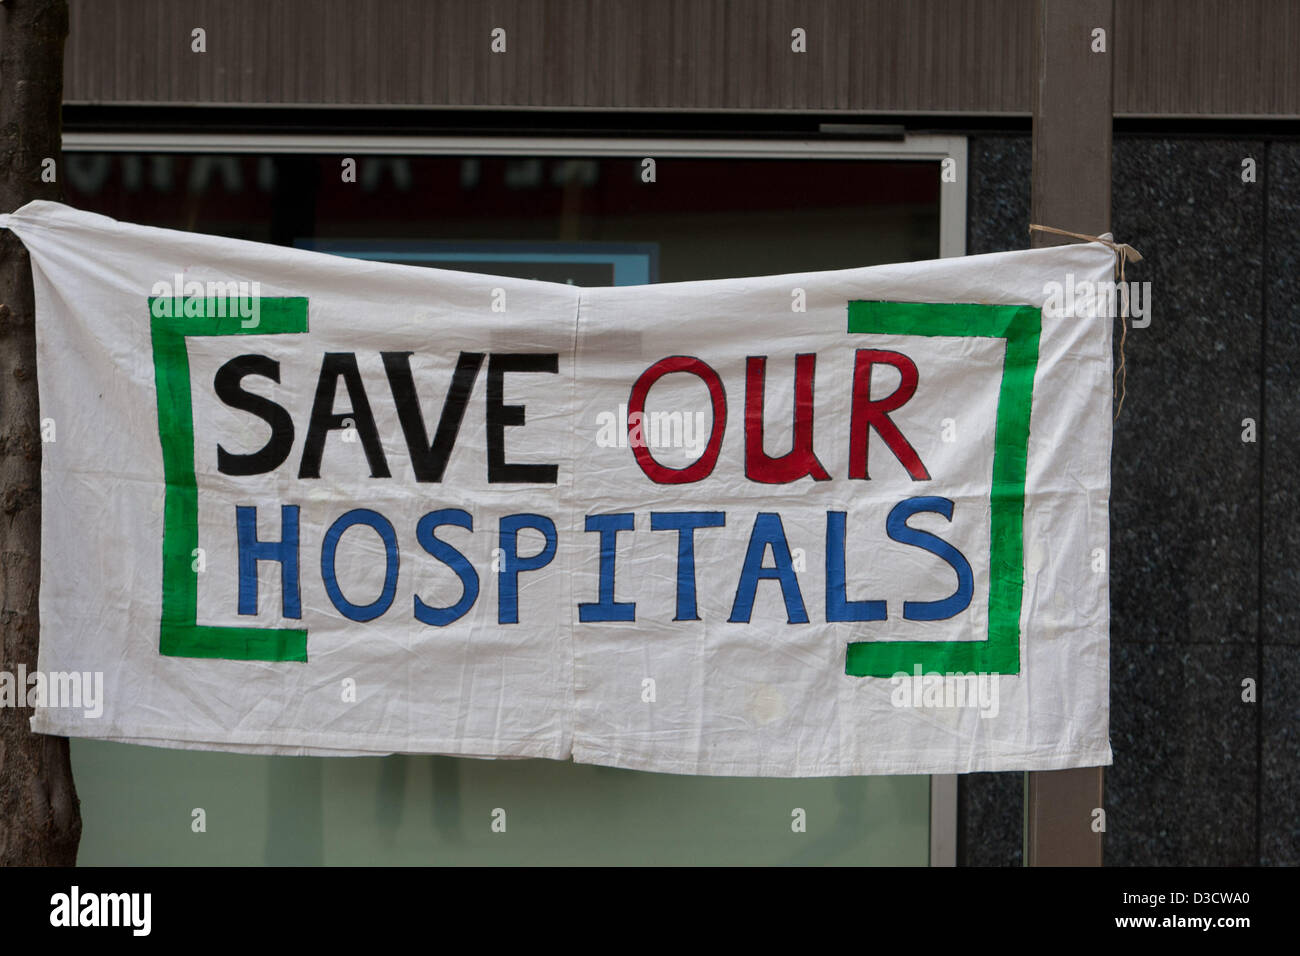 Hammersmith, London, UK. 16th February 2013. Save our hospitals banner at rally as NHS announce closure of A&E - Stock Image